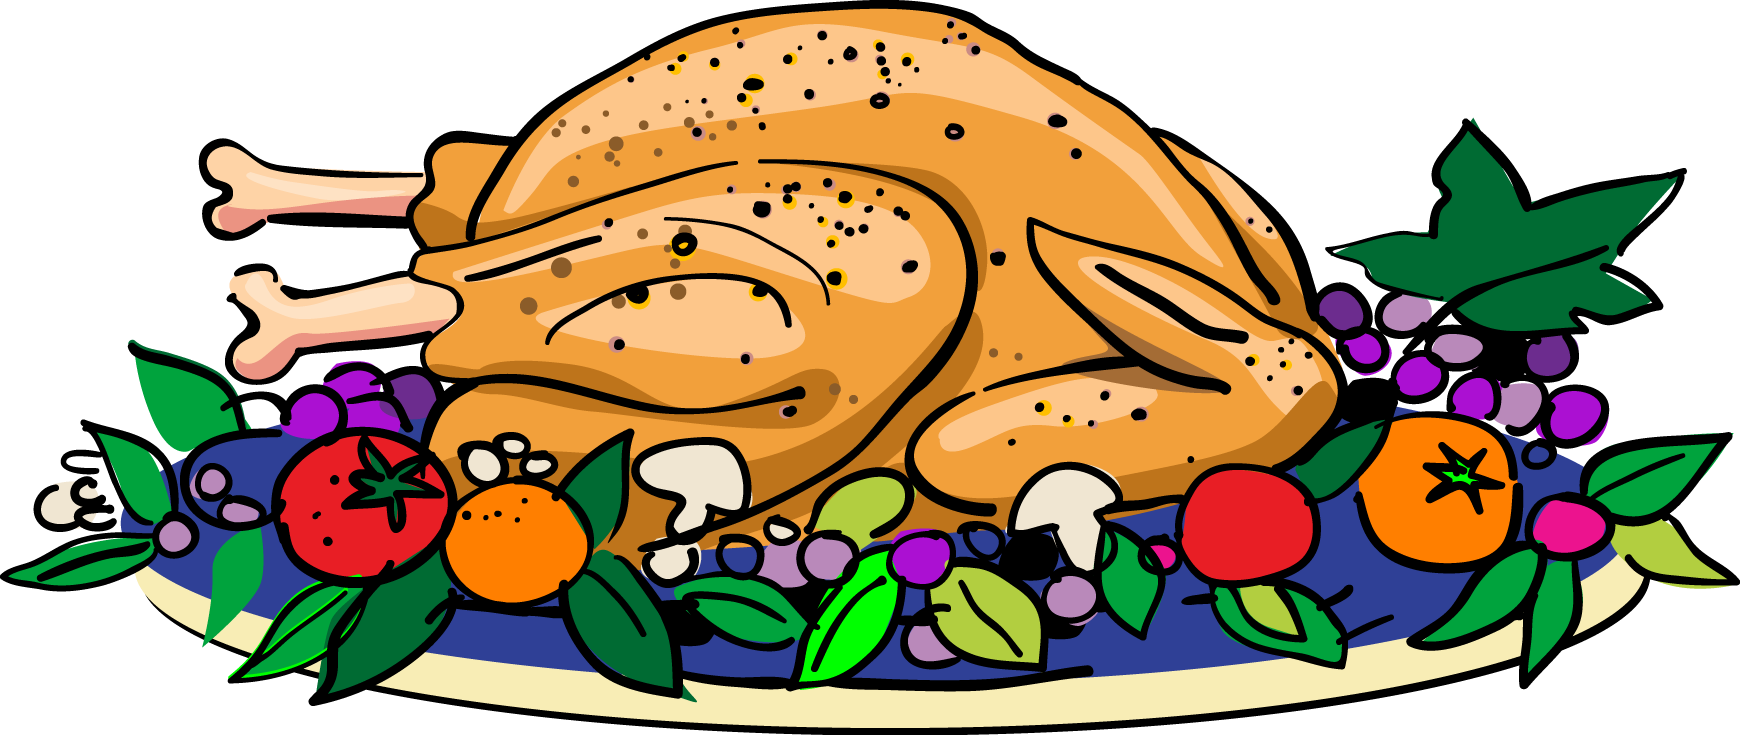 Thanksgiving food clipart free png library download Thanksgiving Dinner Clip Art & Thanksgiving Dinner Clip Art Clip ... png library download